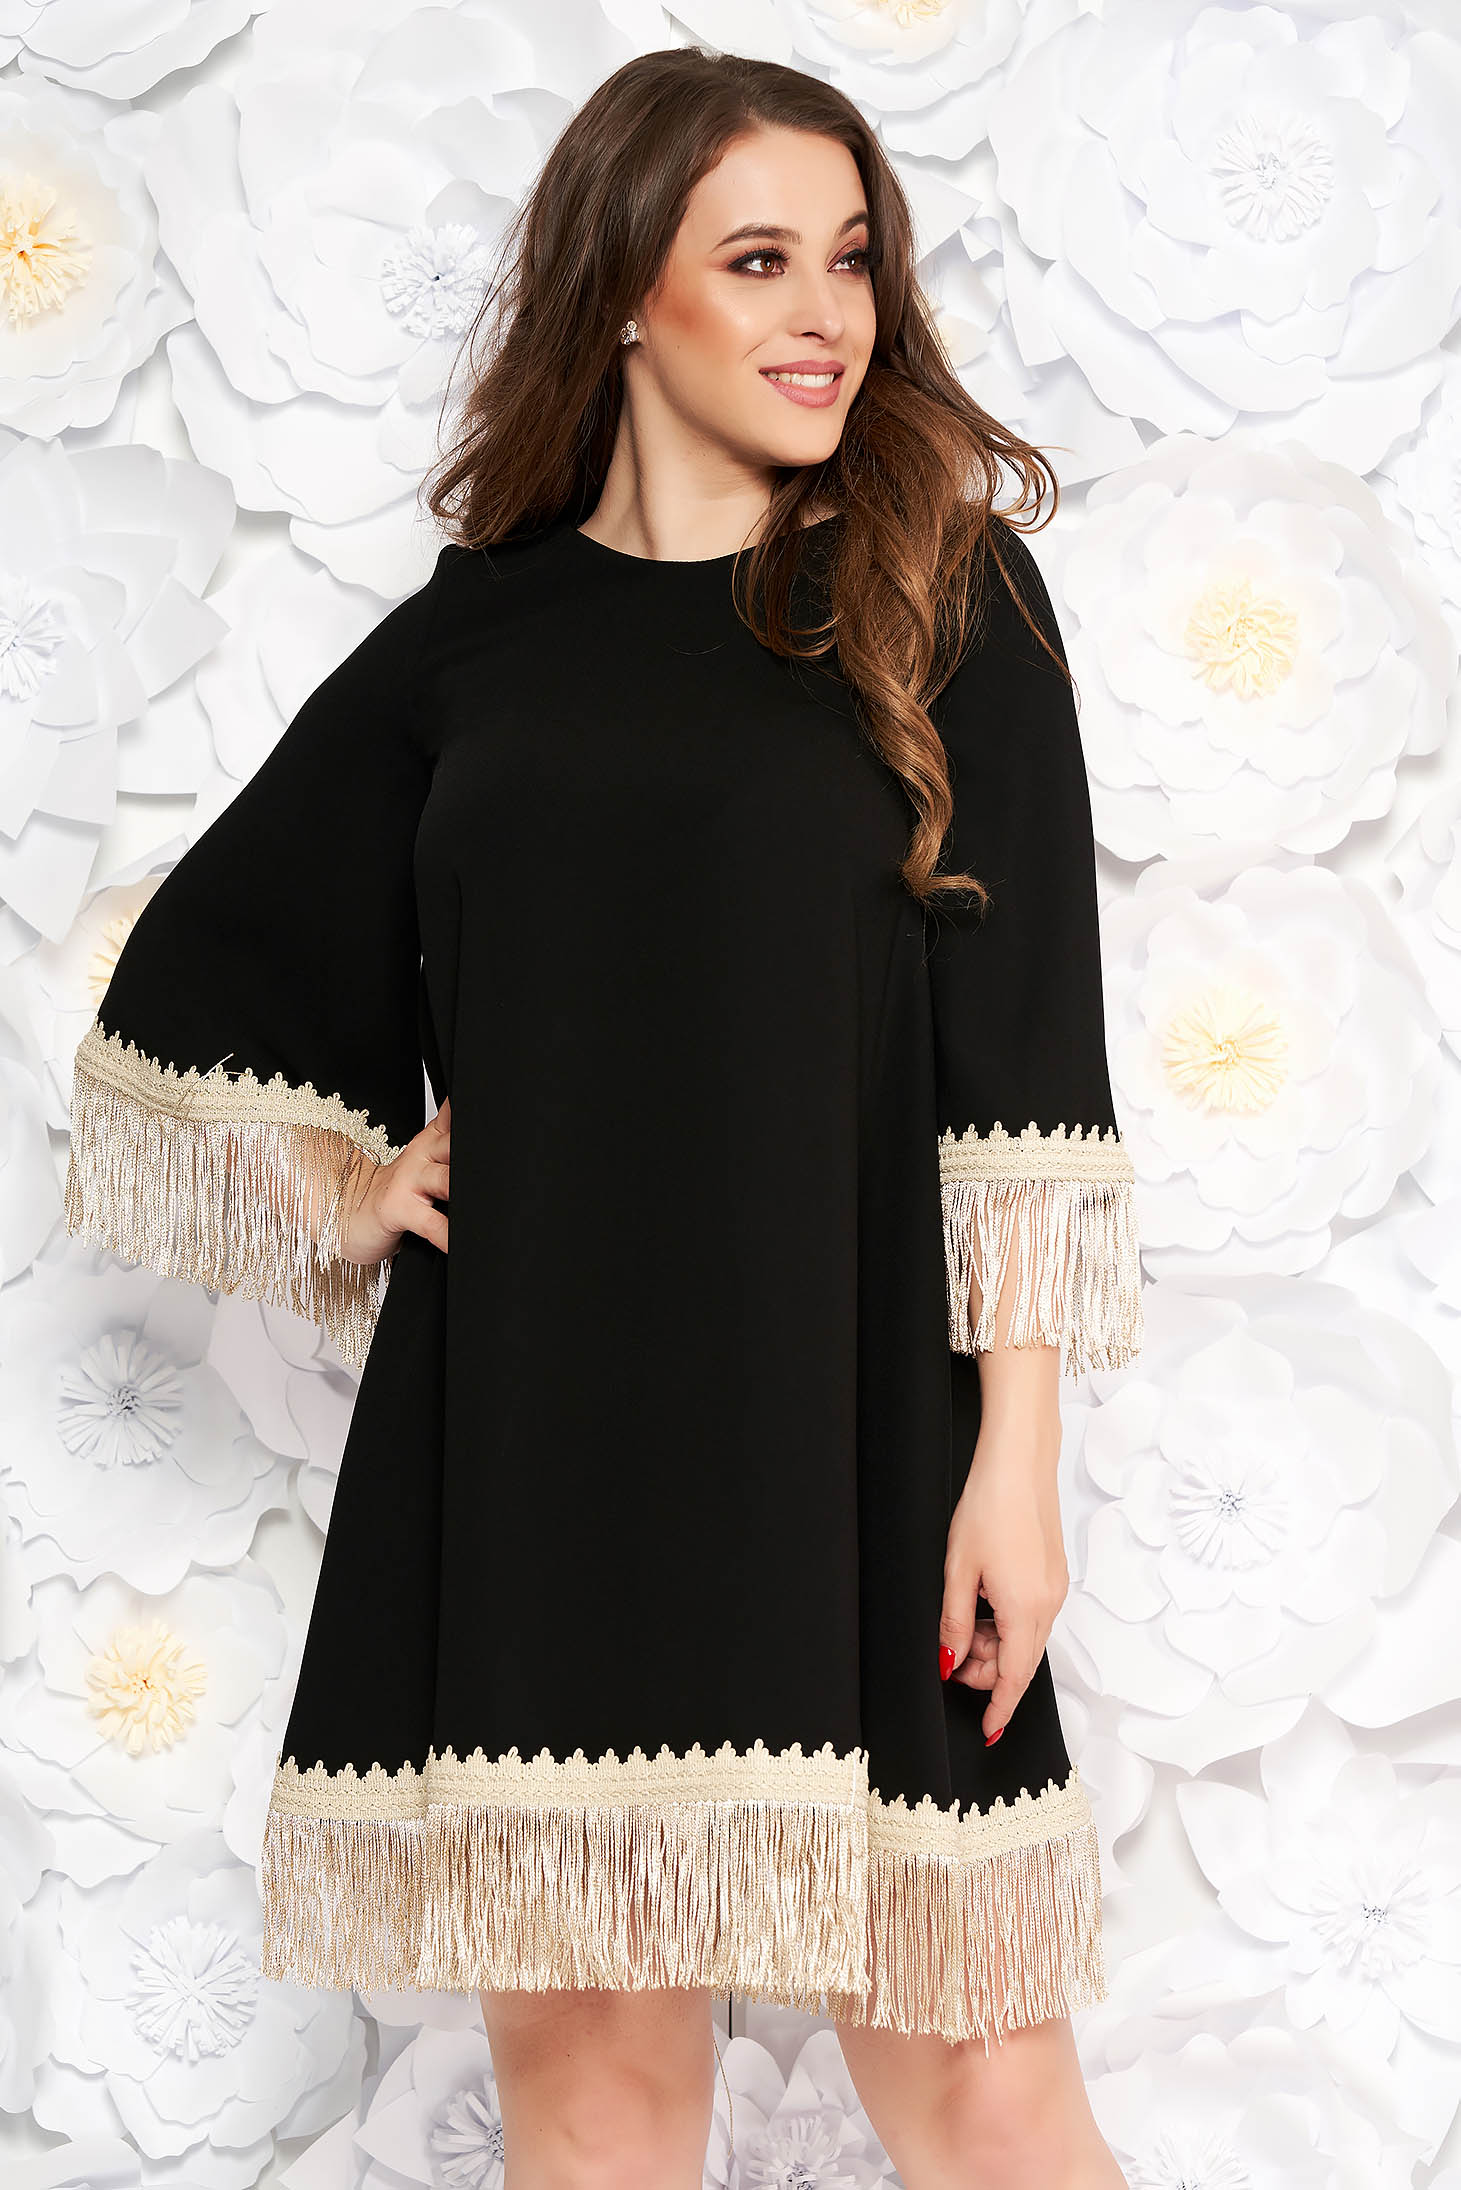 LaDonna black elegant flared dress from non elastic fabric with fringes 3/4 sleeve